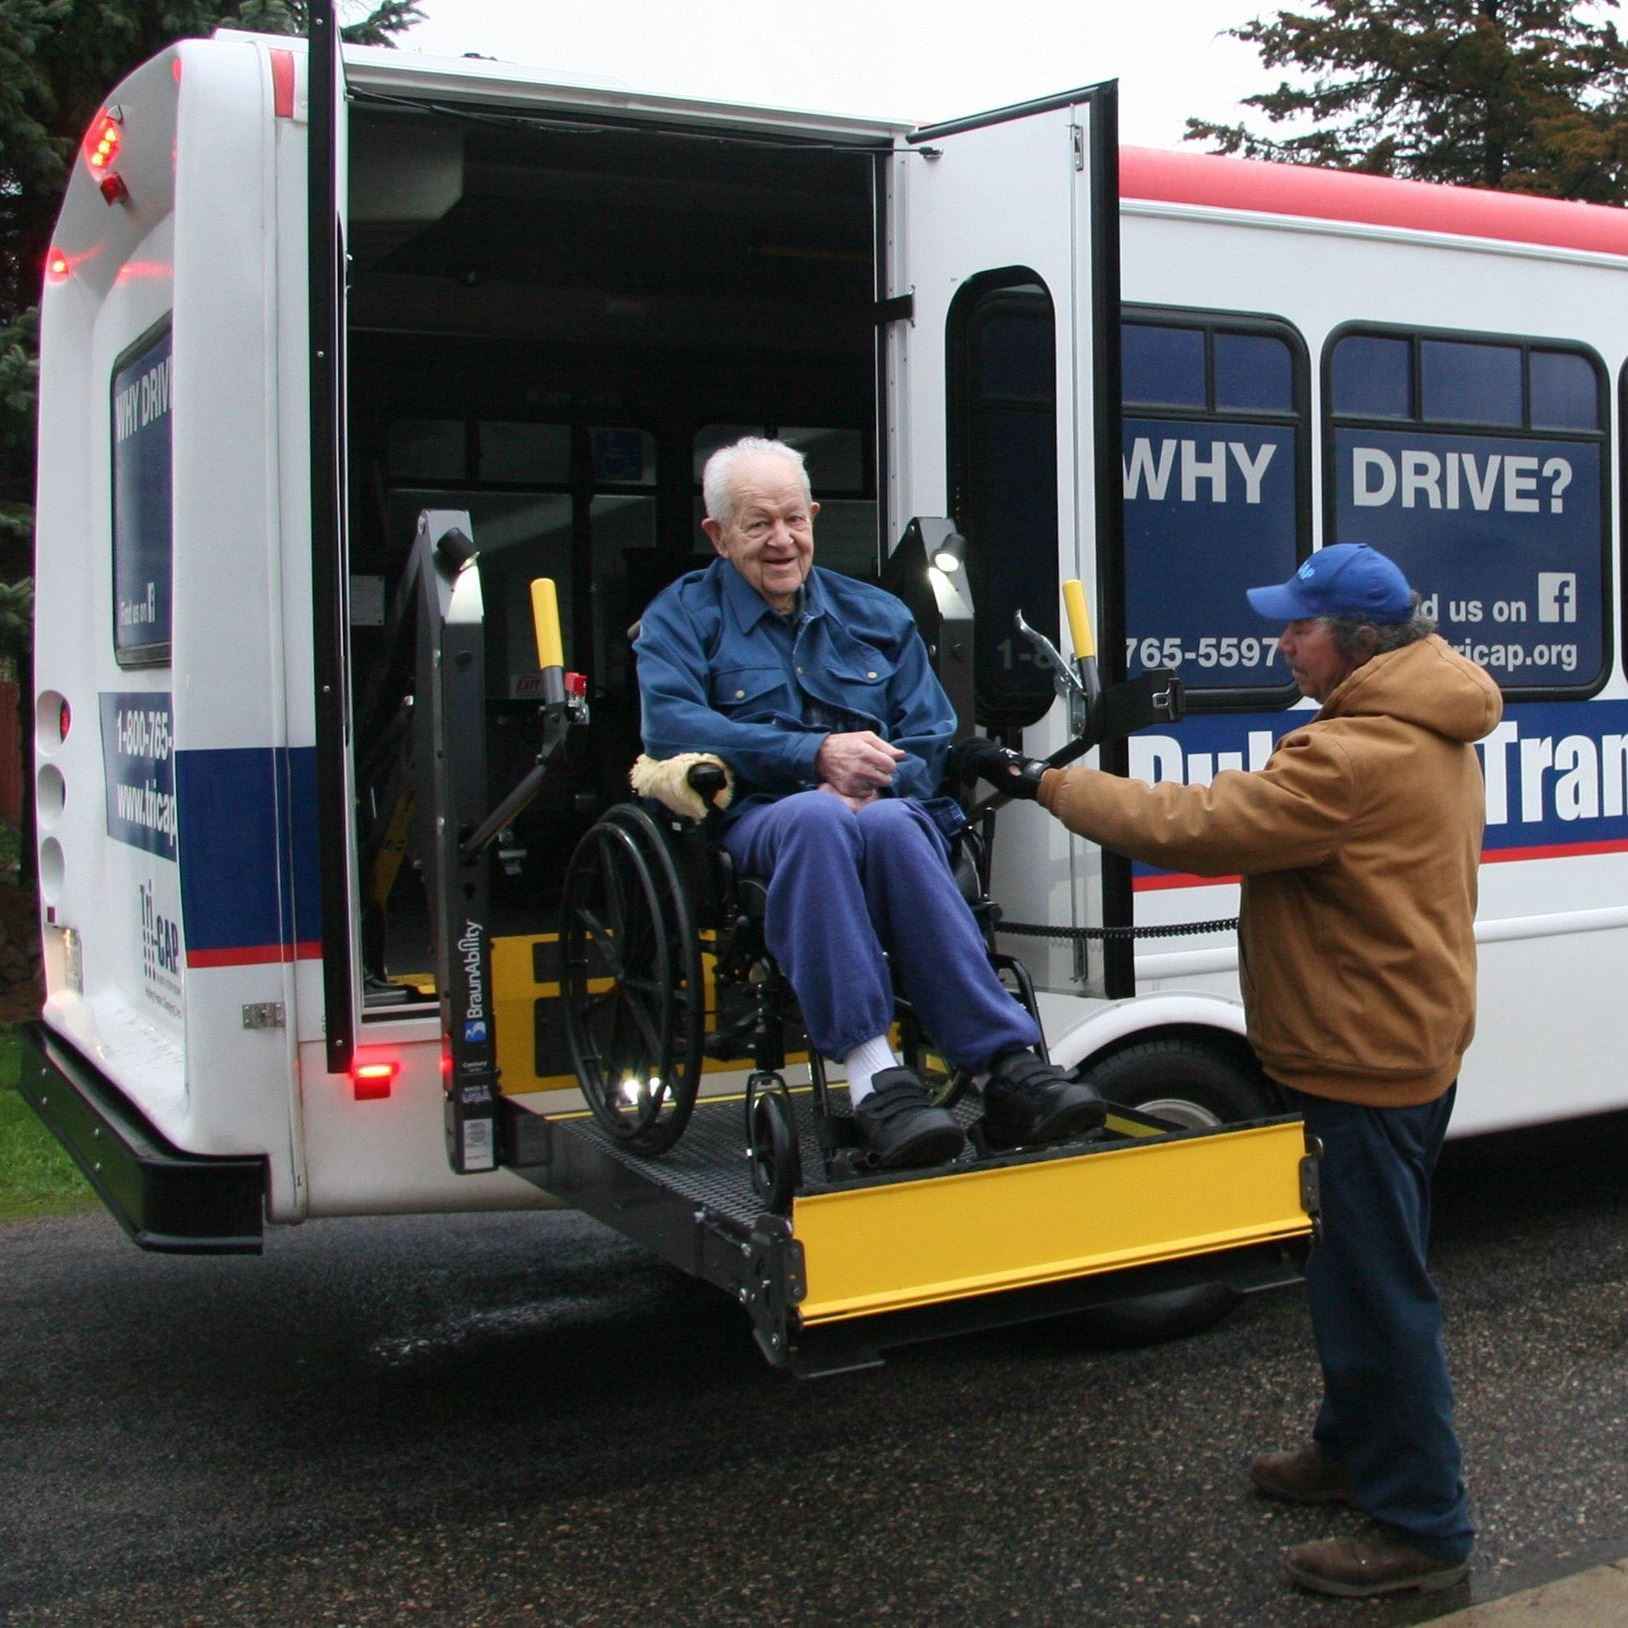 Man in wheelchair getting on Tri-CAP bus.